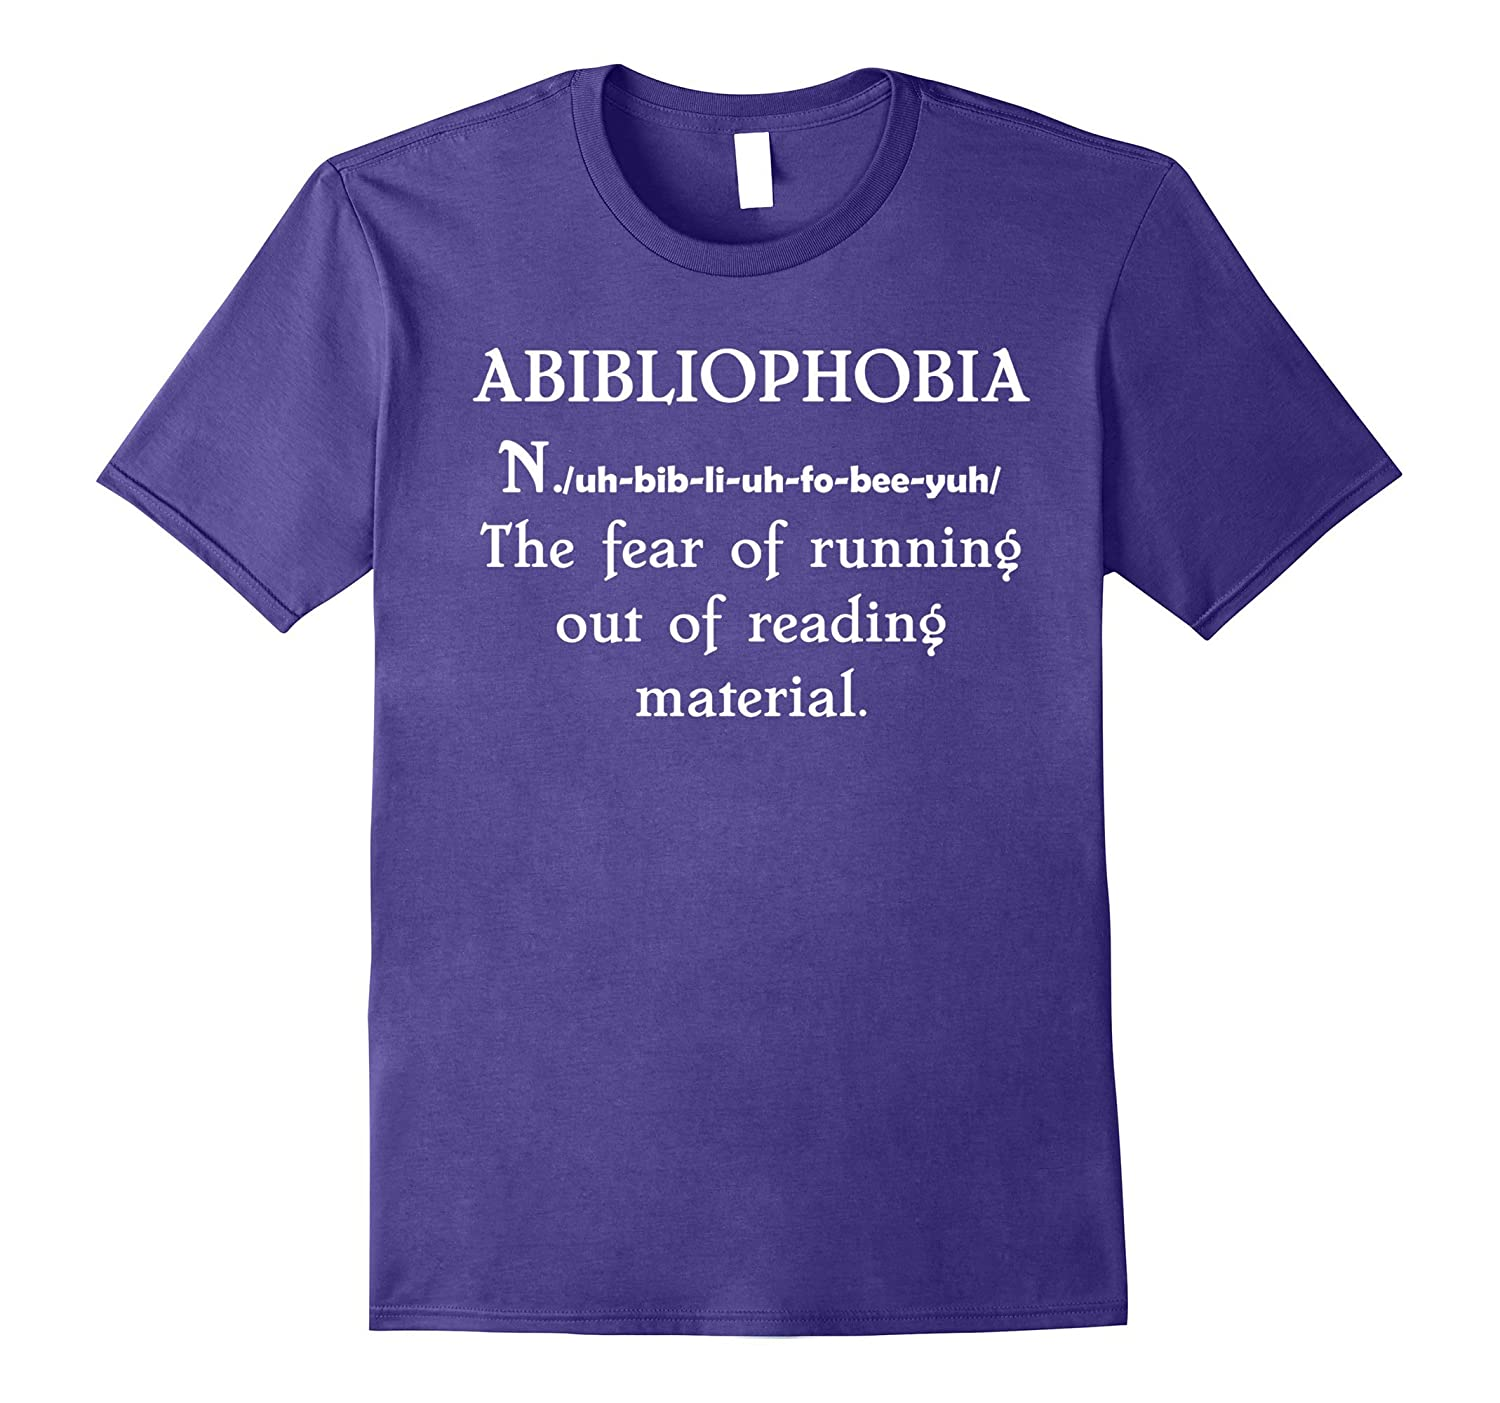 Abibliophobia is the fear of running out of reading material-PL